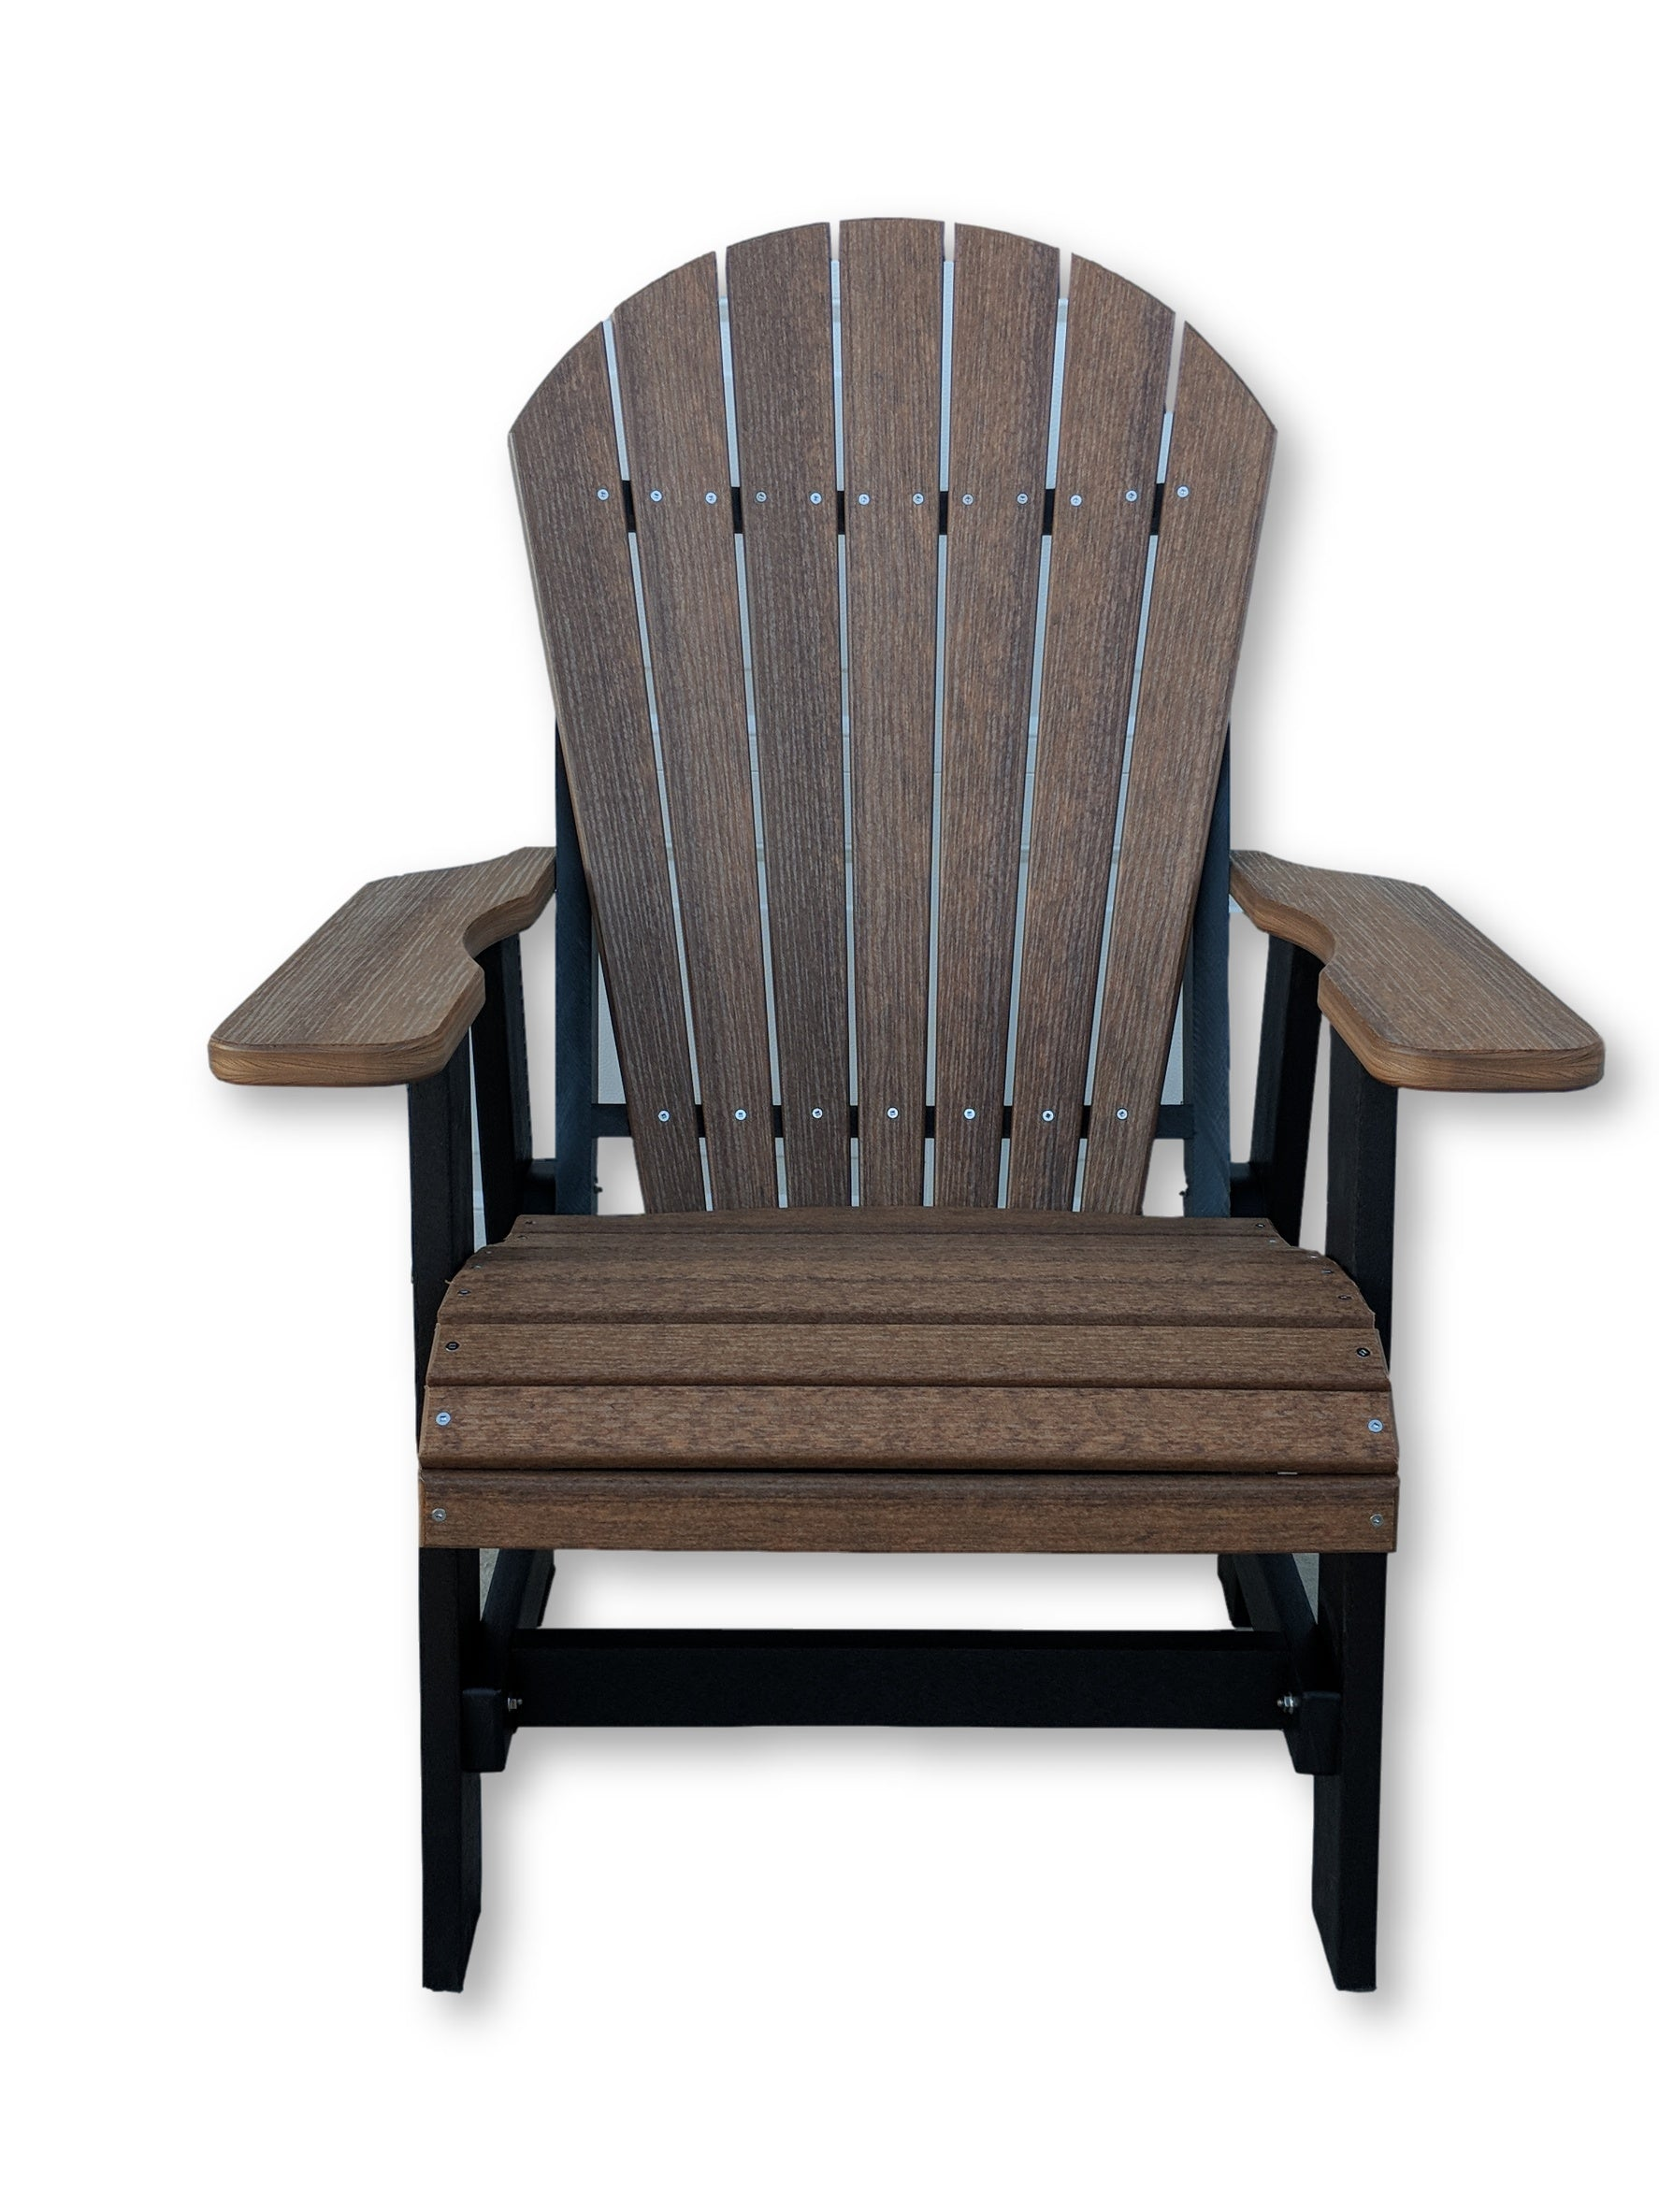 Antique Mahogany Black Folding Adirondack Chair (No Cup Holders)